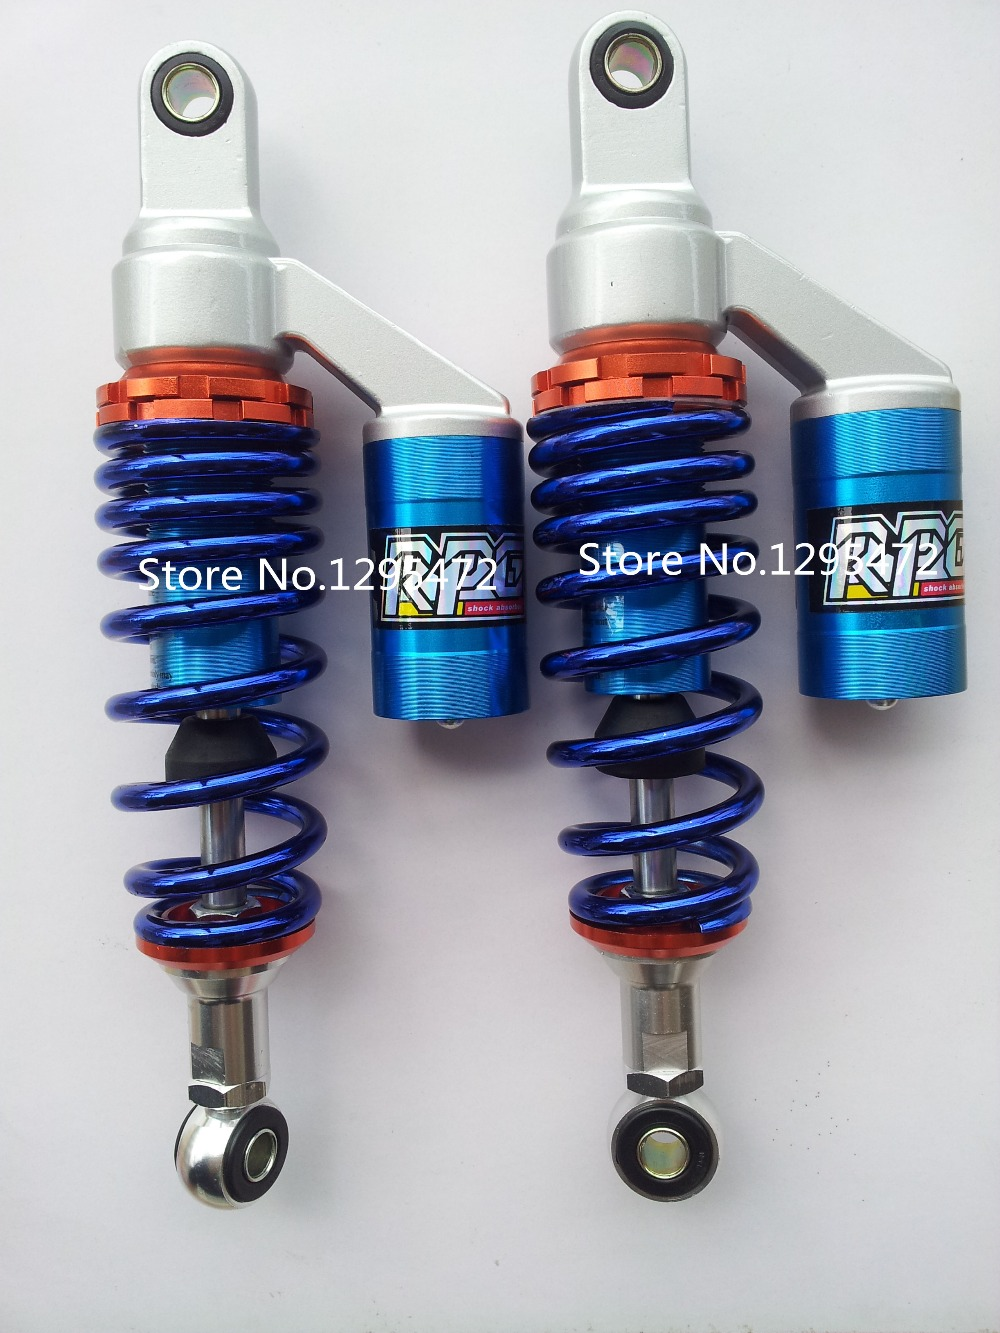 300mm   7.5mm spring  motorcycle    shock absorber  assy  for   motorbike  DIRT BIKE  ATV QUAD   colour blue купить